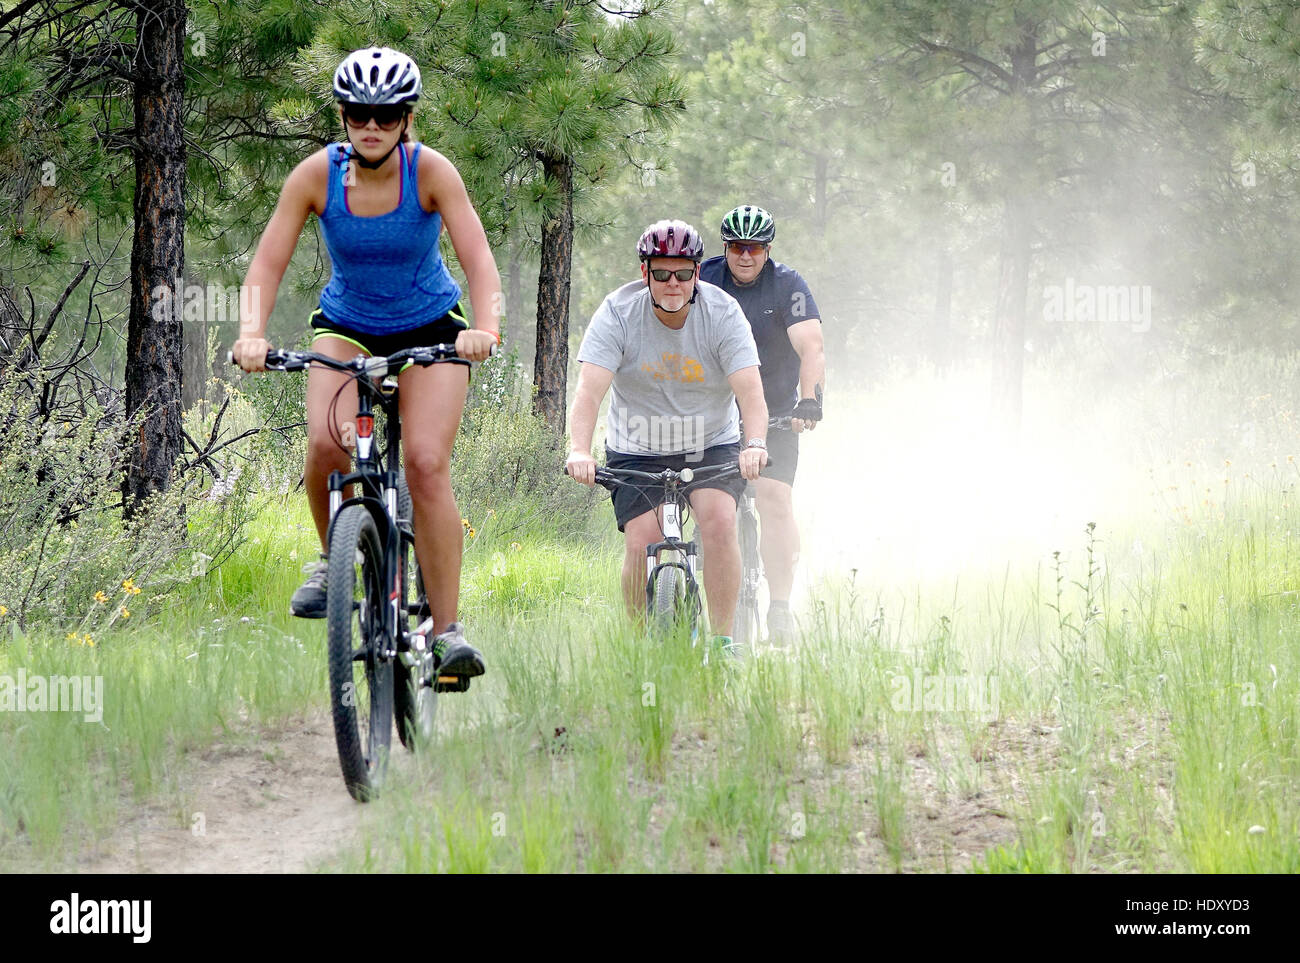 Three mountain bikers on a dusty trail. - Stock Image